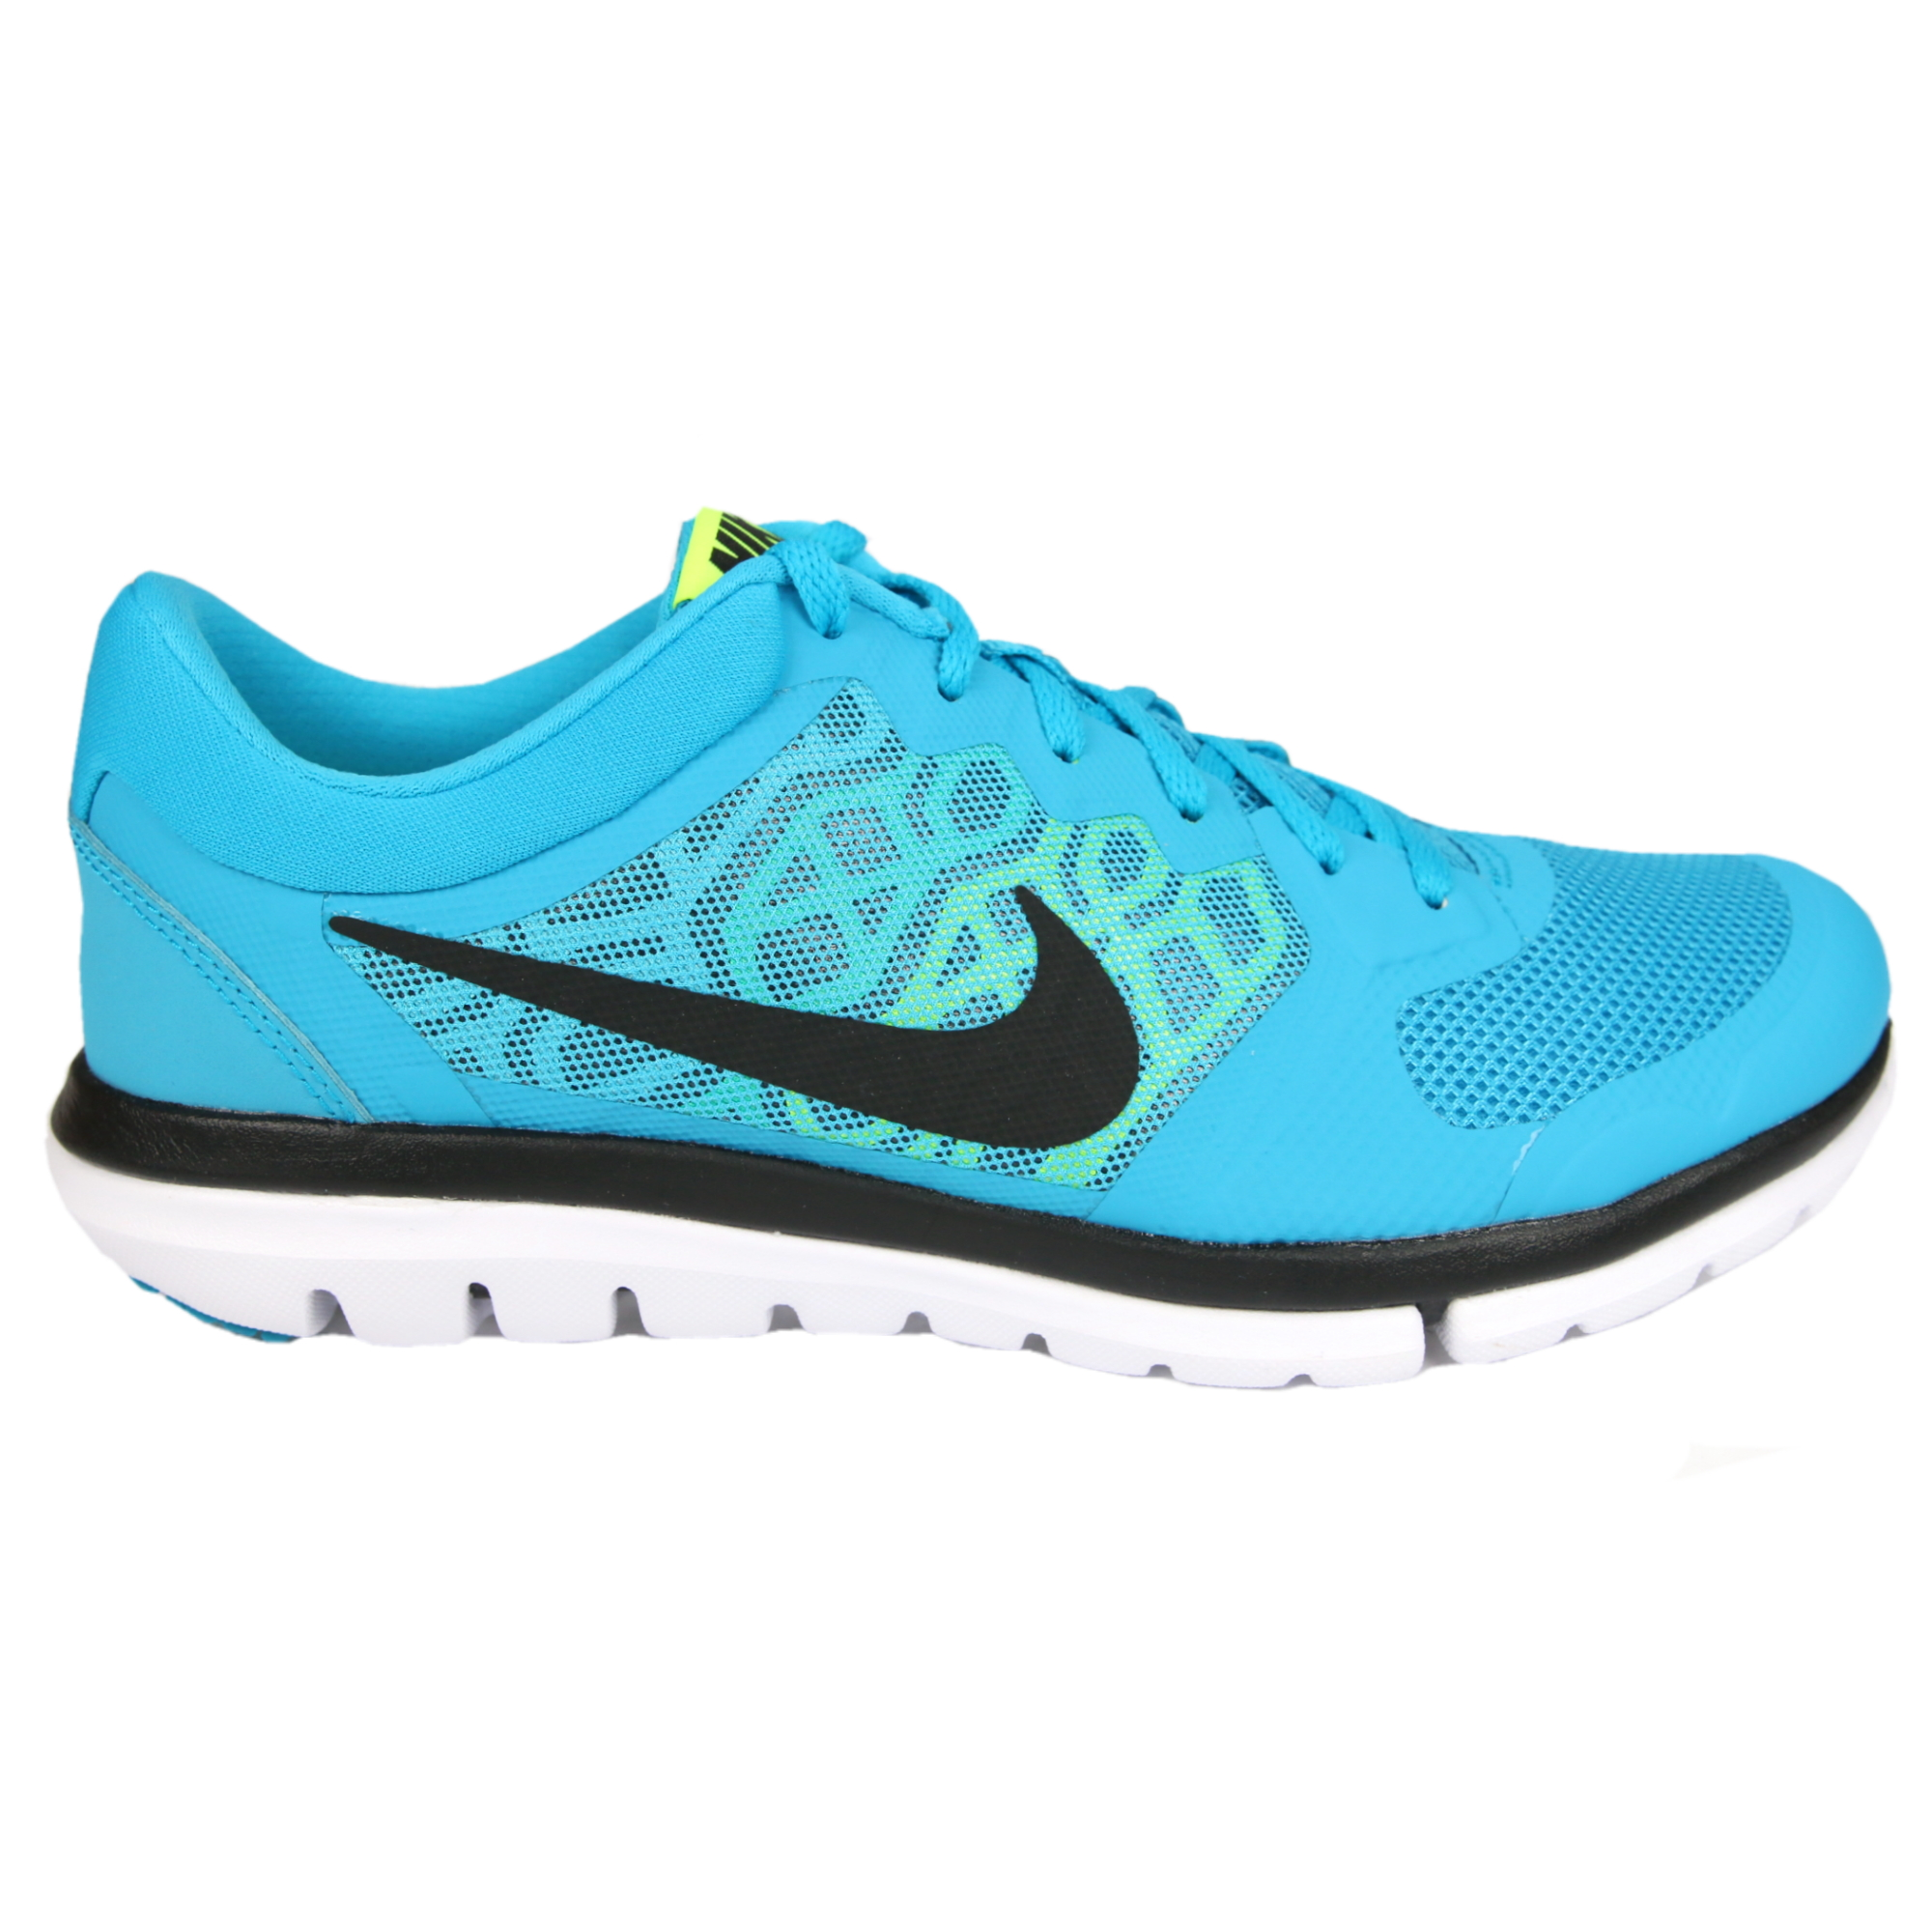 Nike Flex 2015 Shoes Running Fitness Sneakers Trainers Men